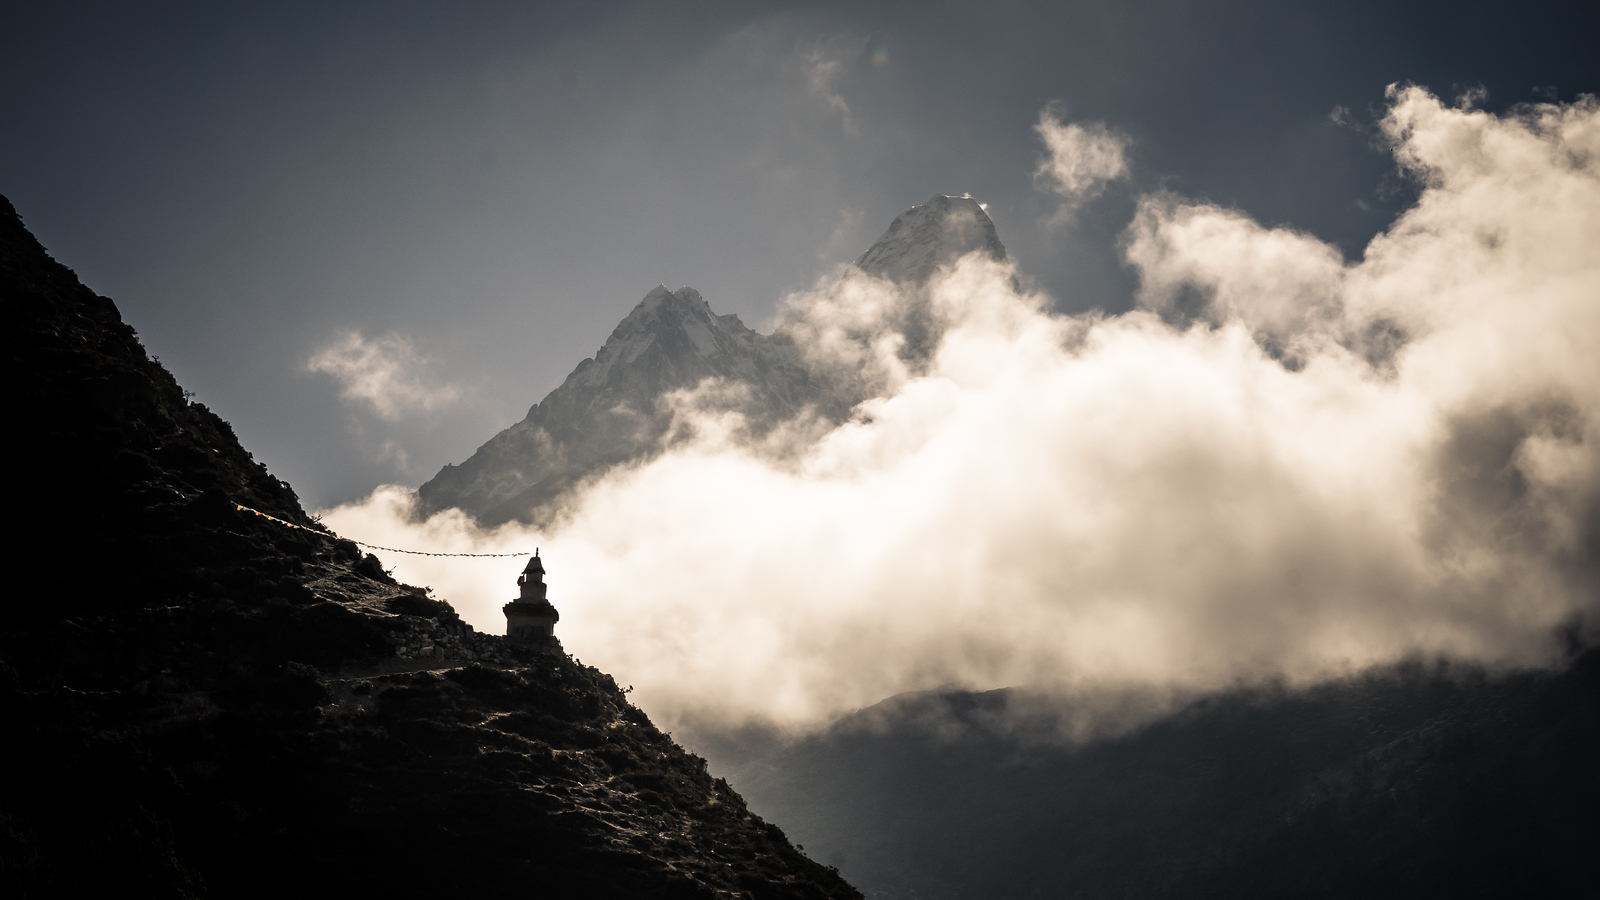 On the trail above Namche Bazaar